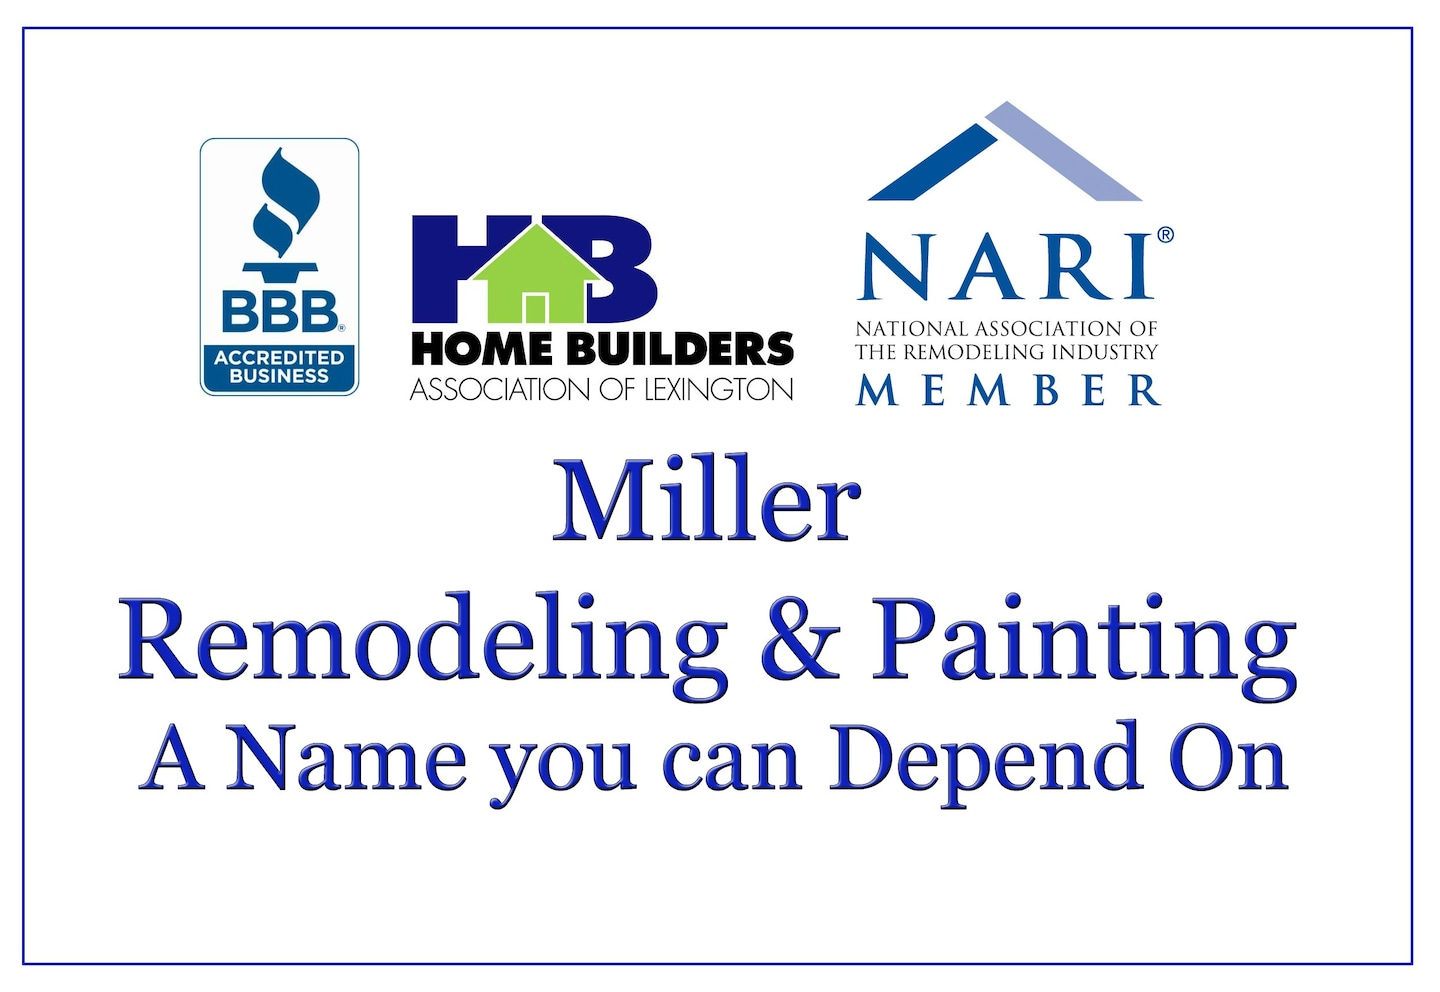 Miller Remodeling & Painting